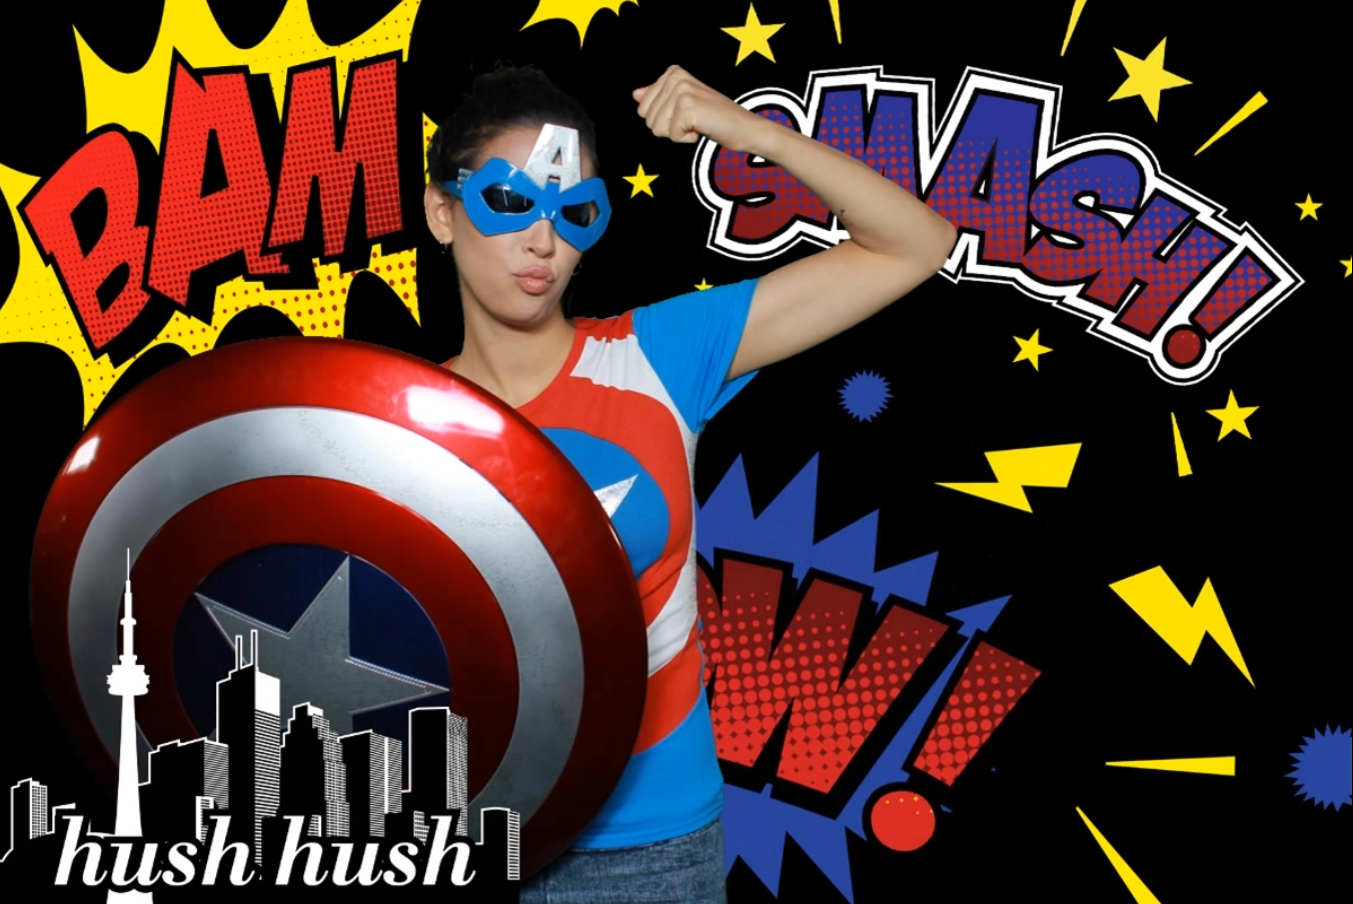 hush hush super hero photo infinity photo booth